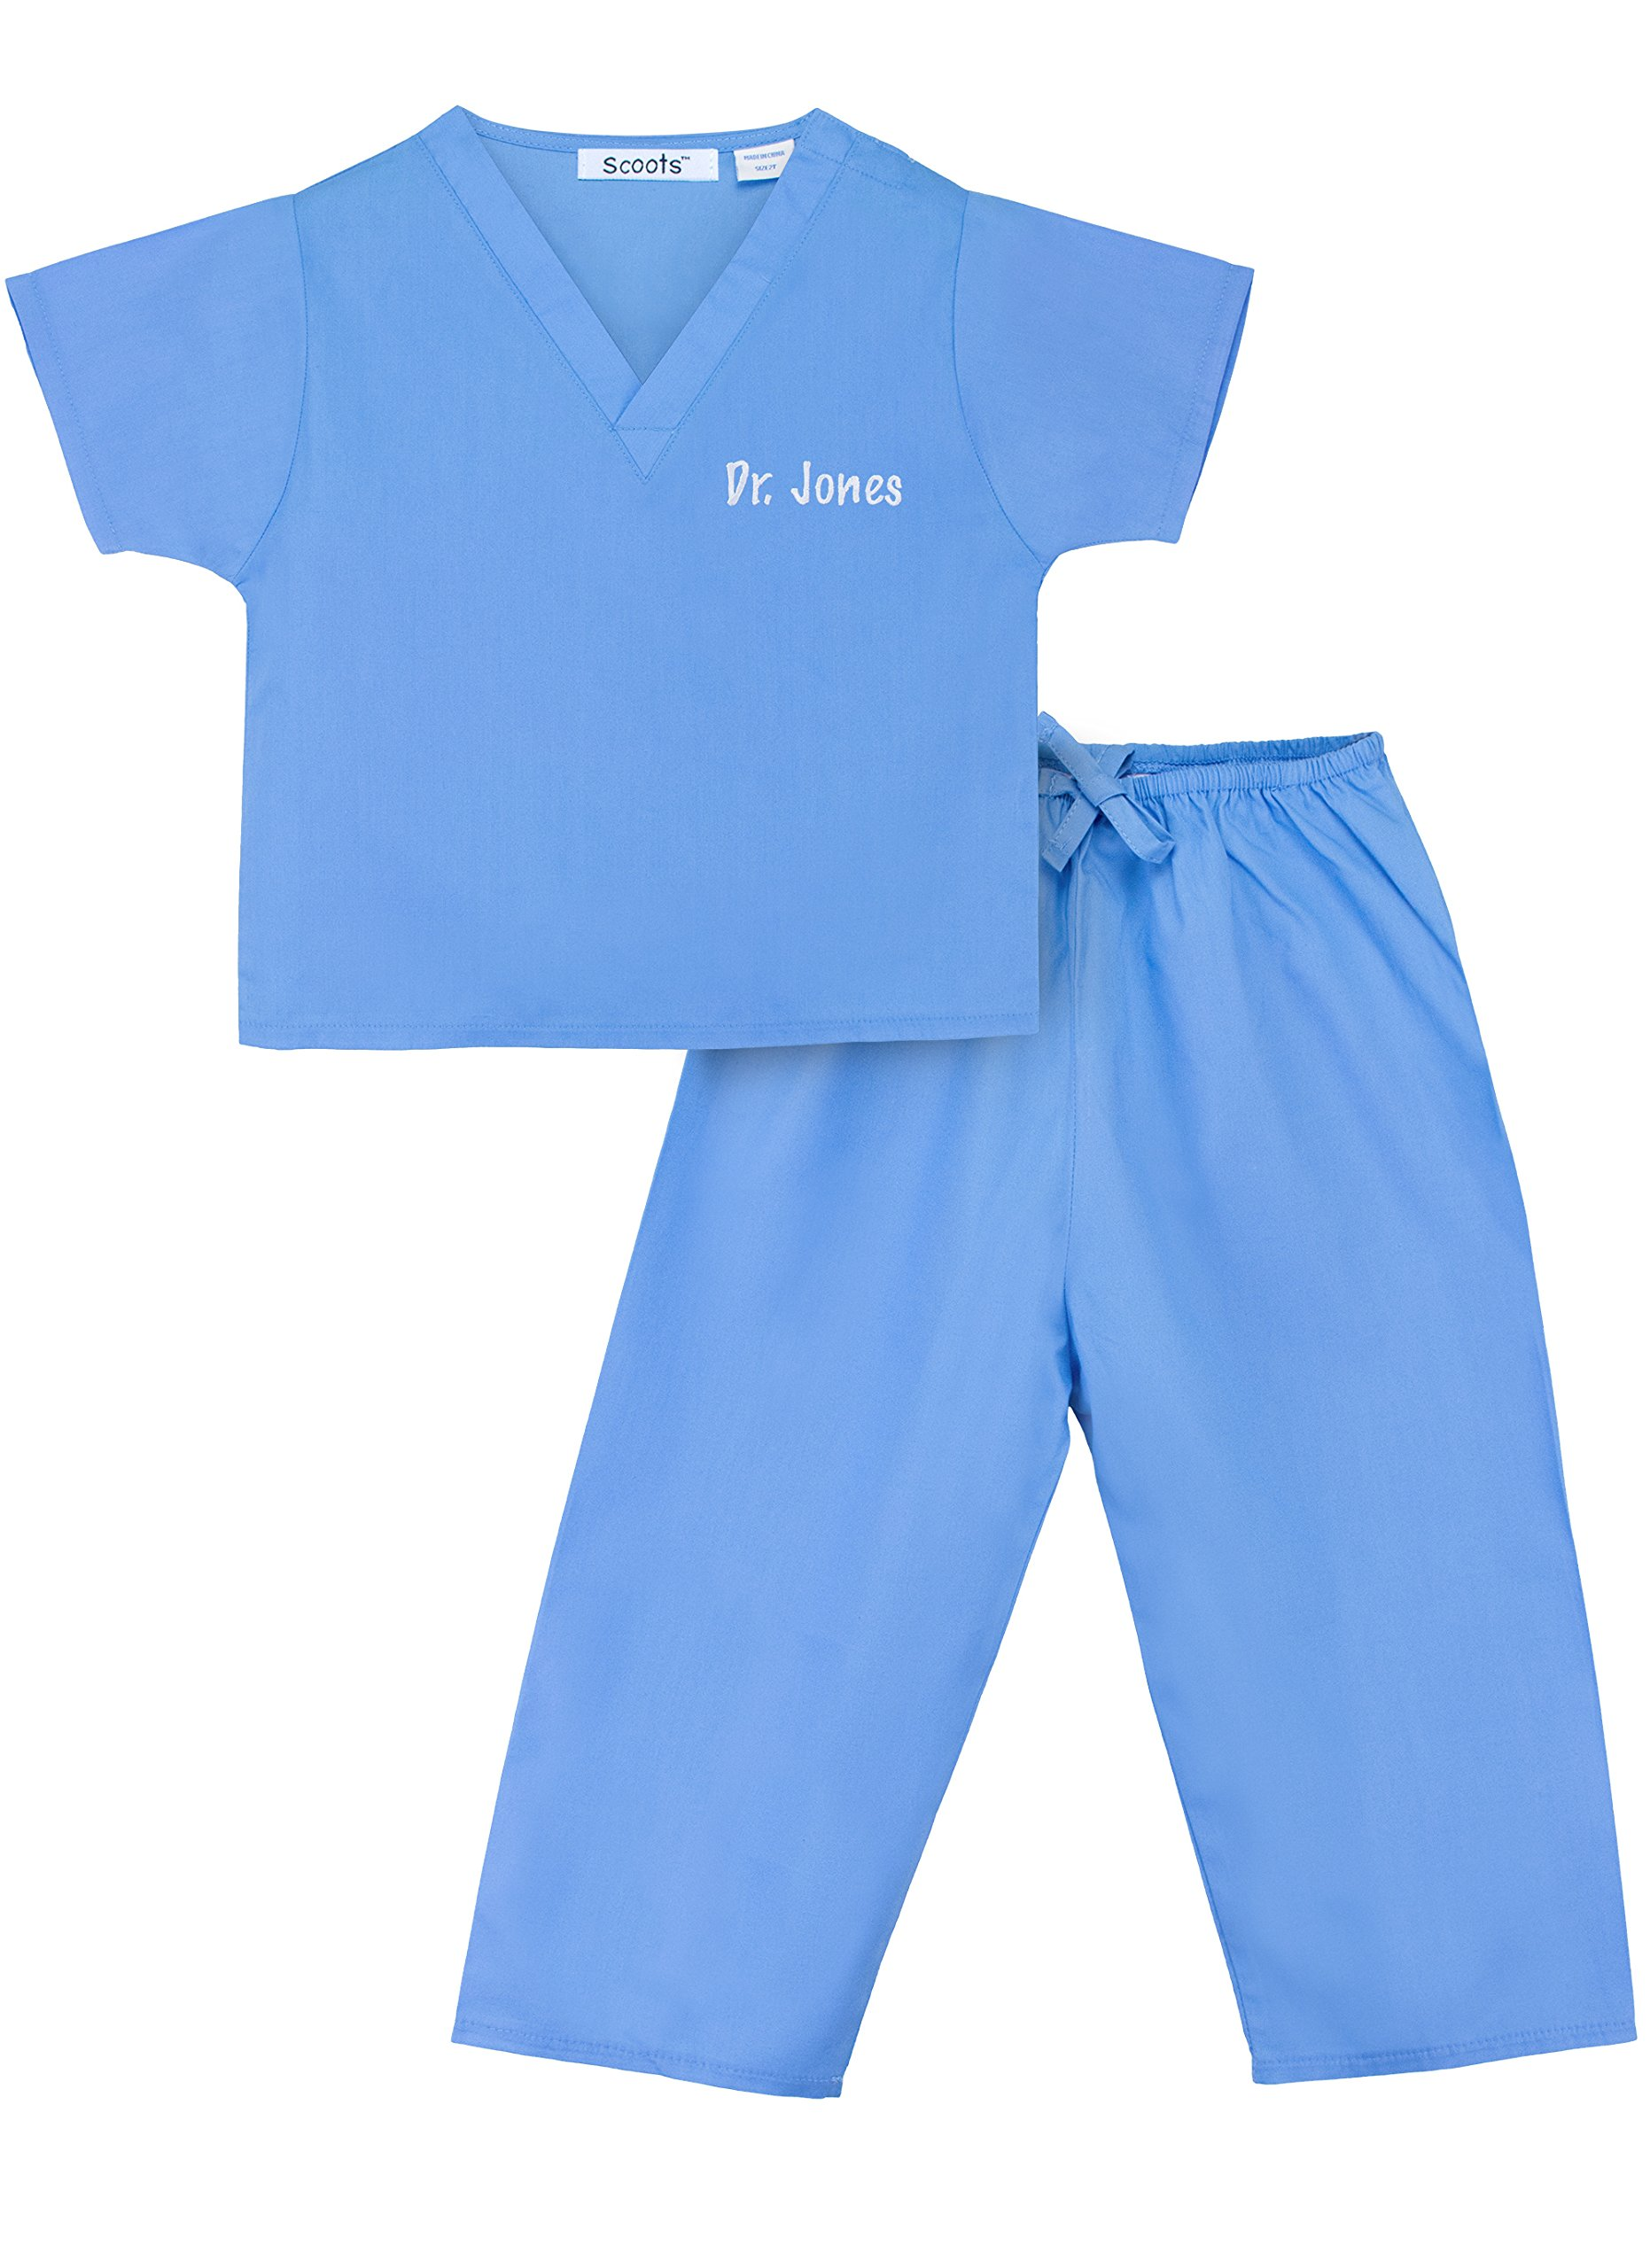 Personalized Scrubs for Children, Size 3T, Blue